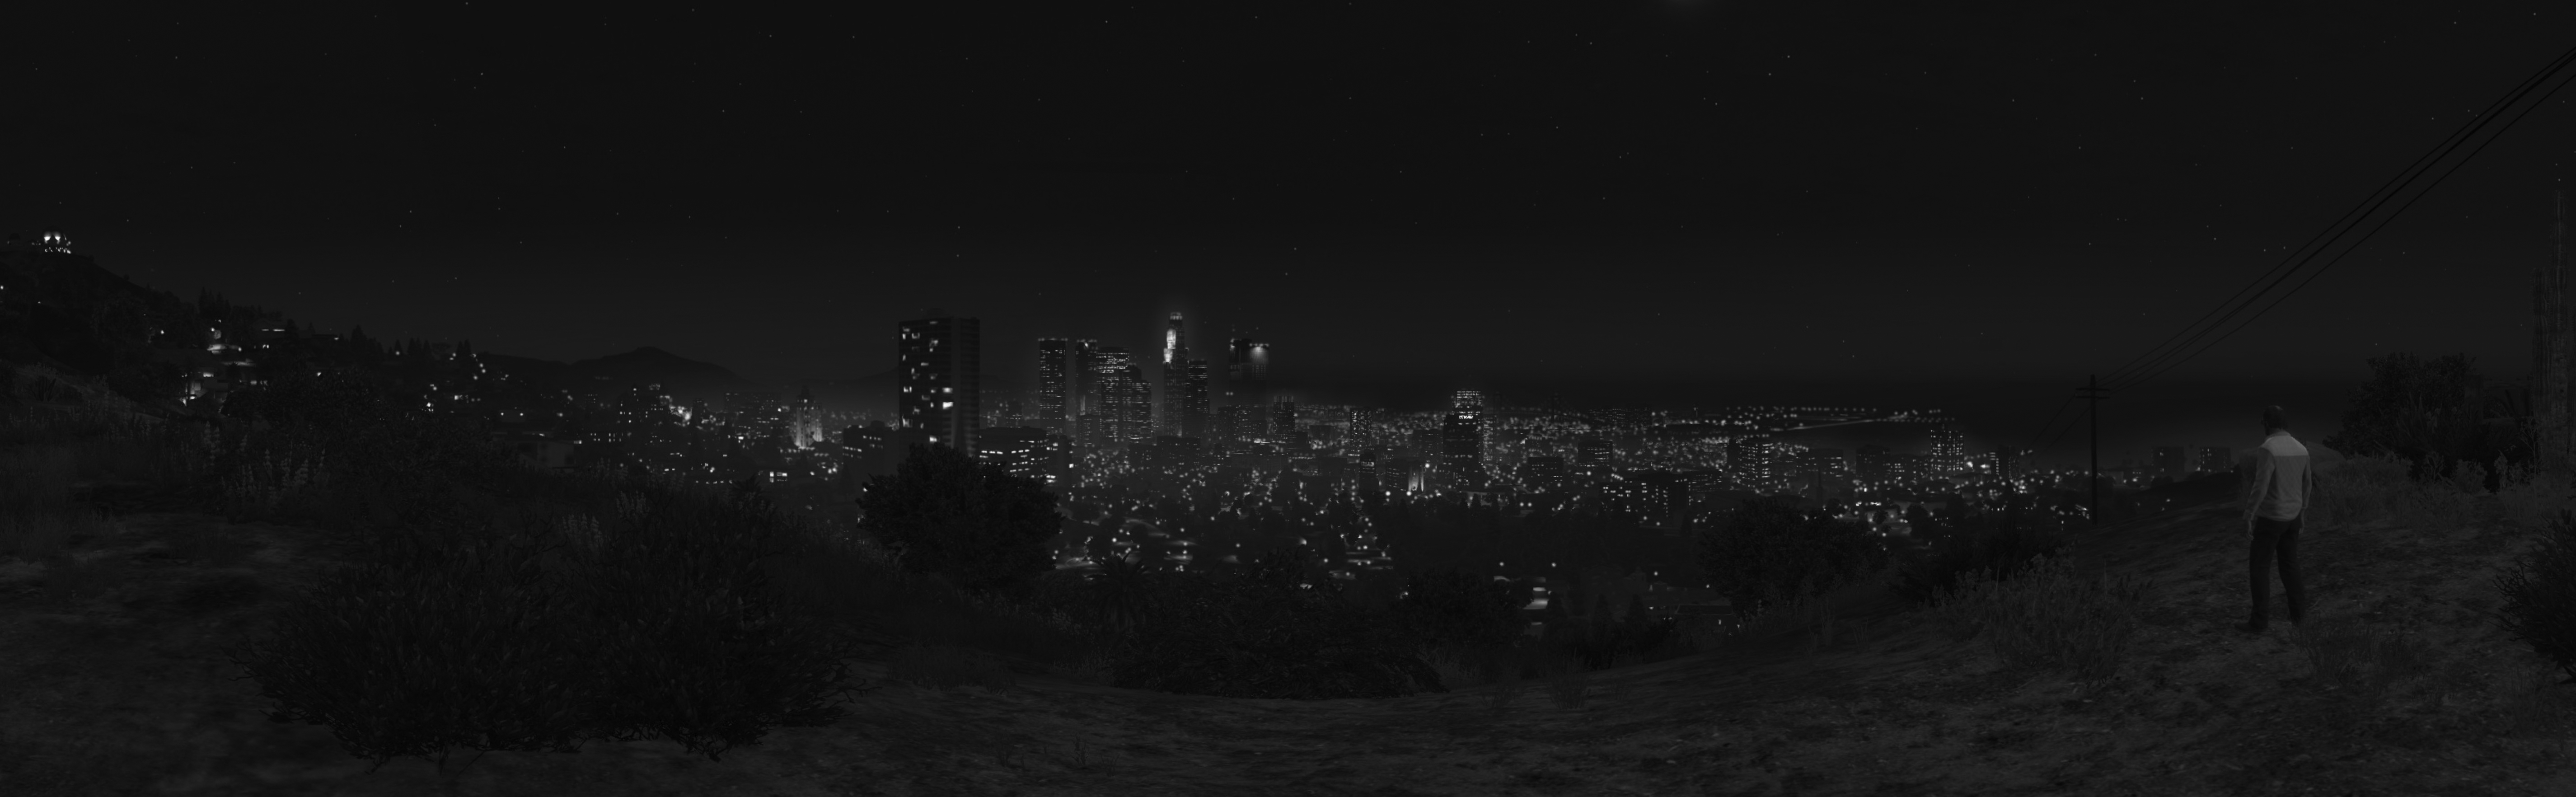 17 Los Santos HD Wallpapers Background Images 5702x1764